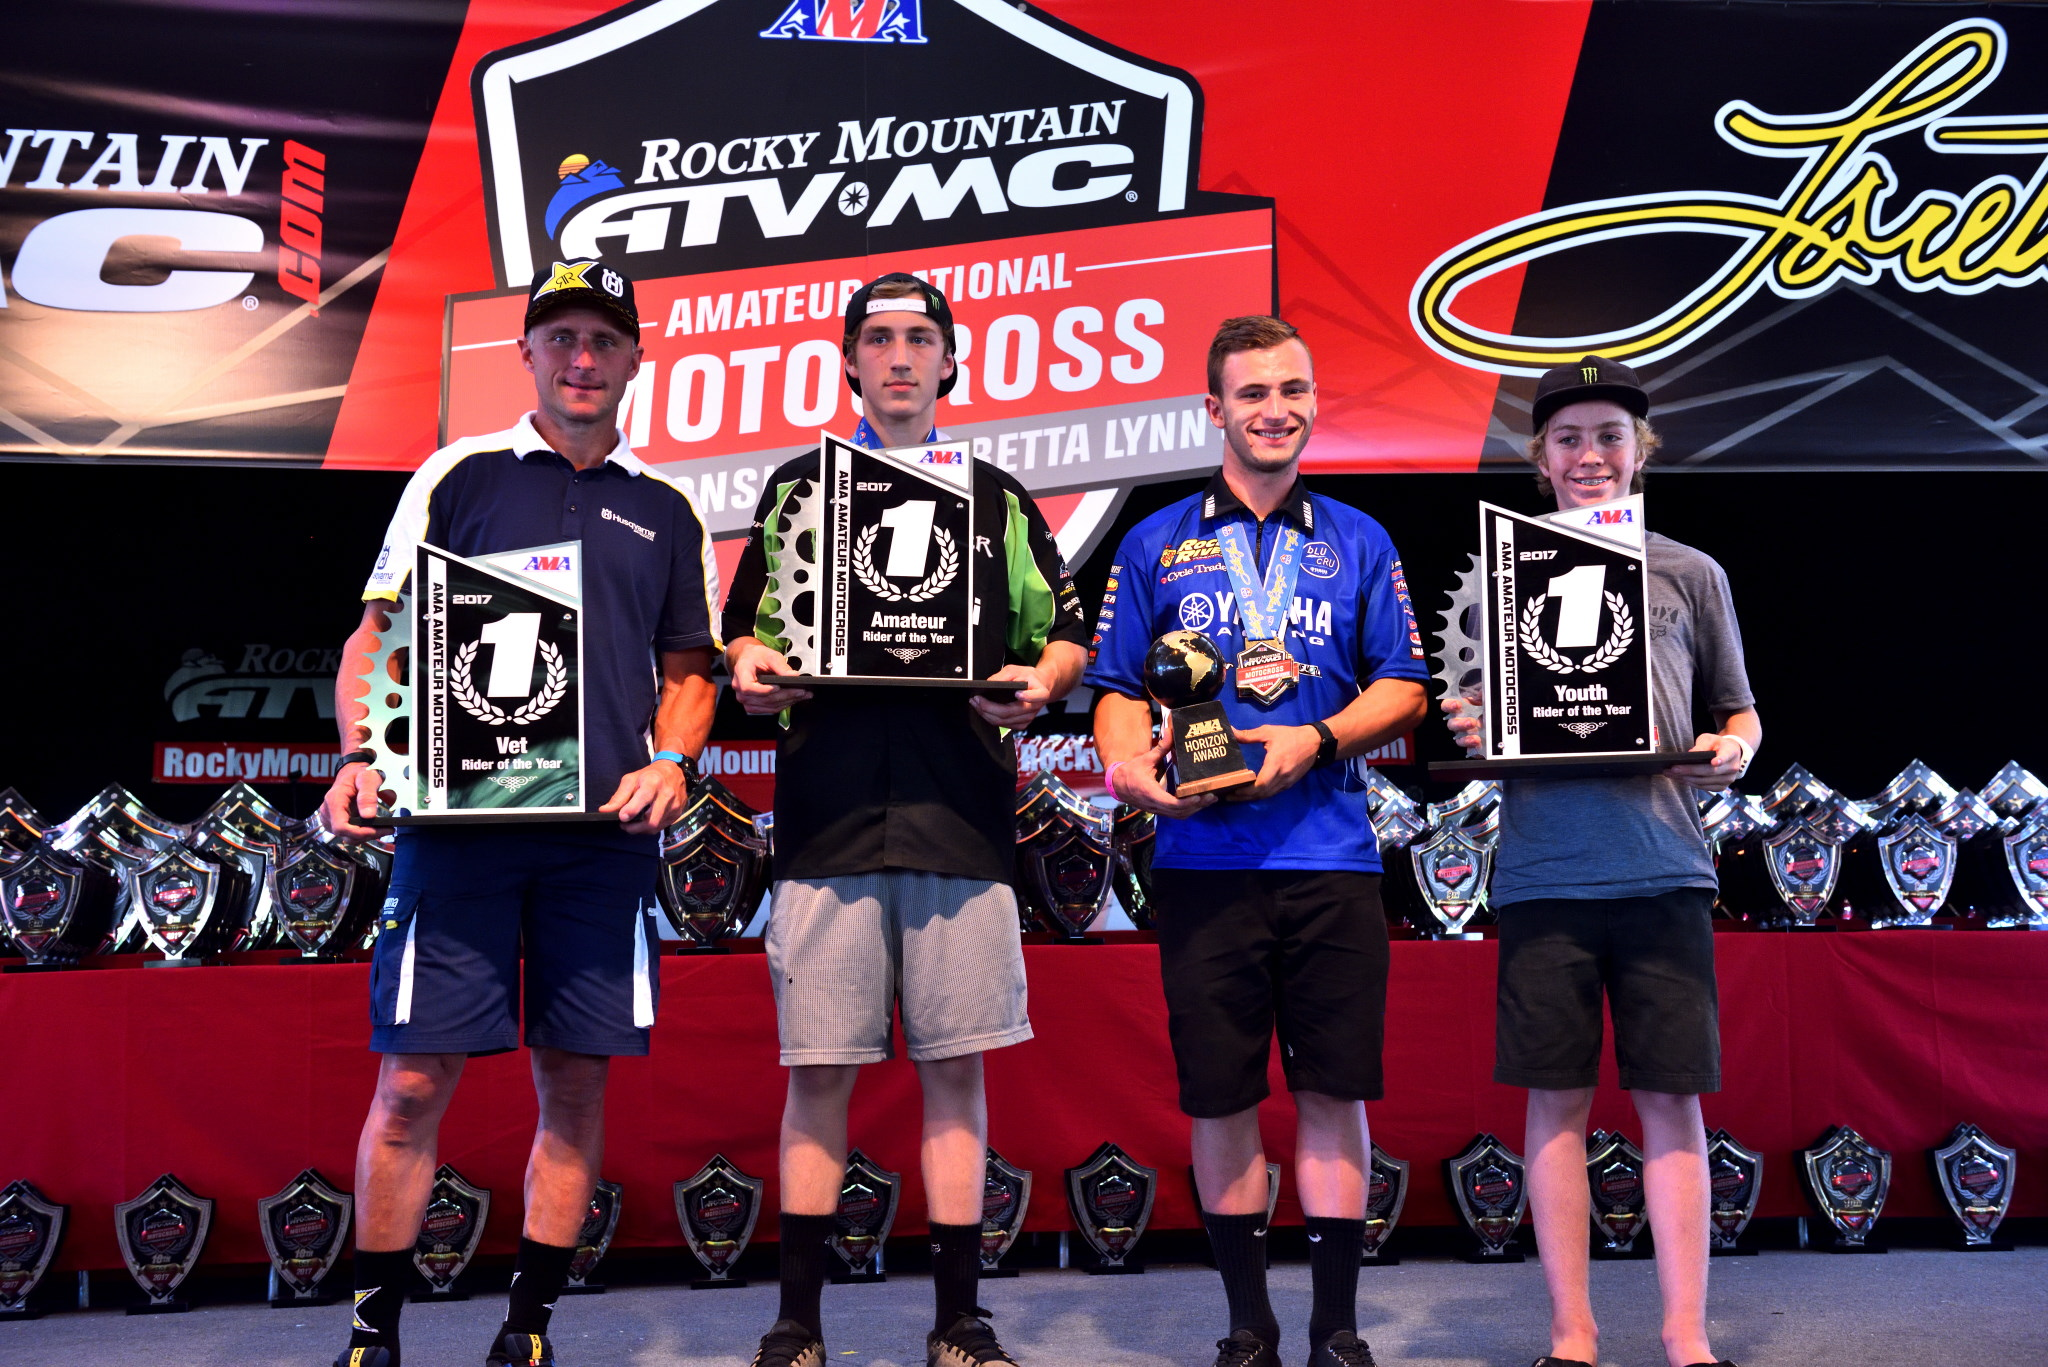 AMA Specialty Award Winners: Mike Brown, Garrett Marchbanks, Justin Cooper, Ty Masterpool.